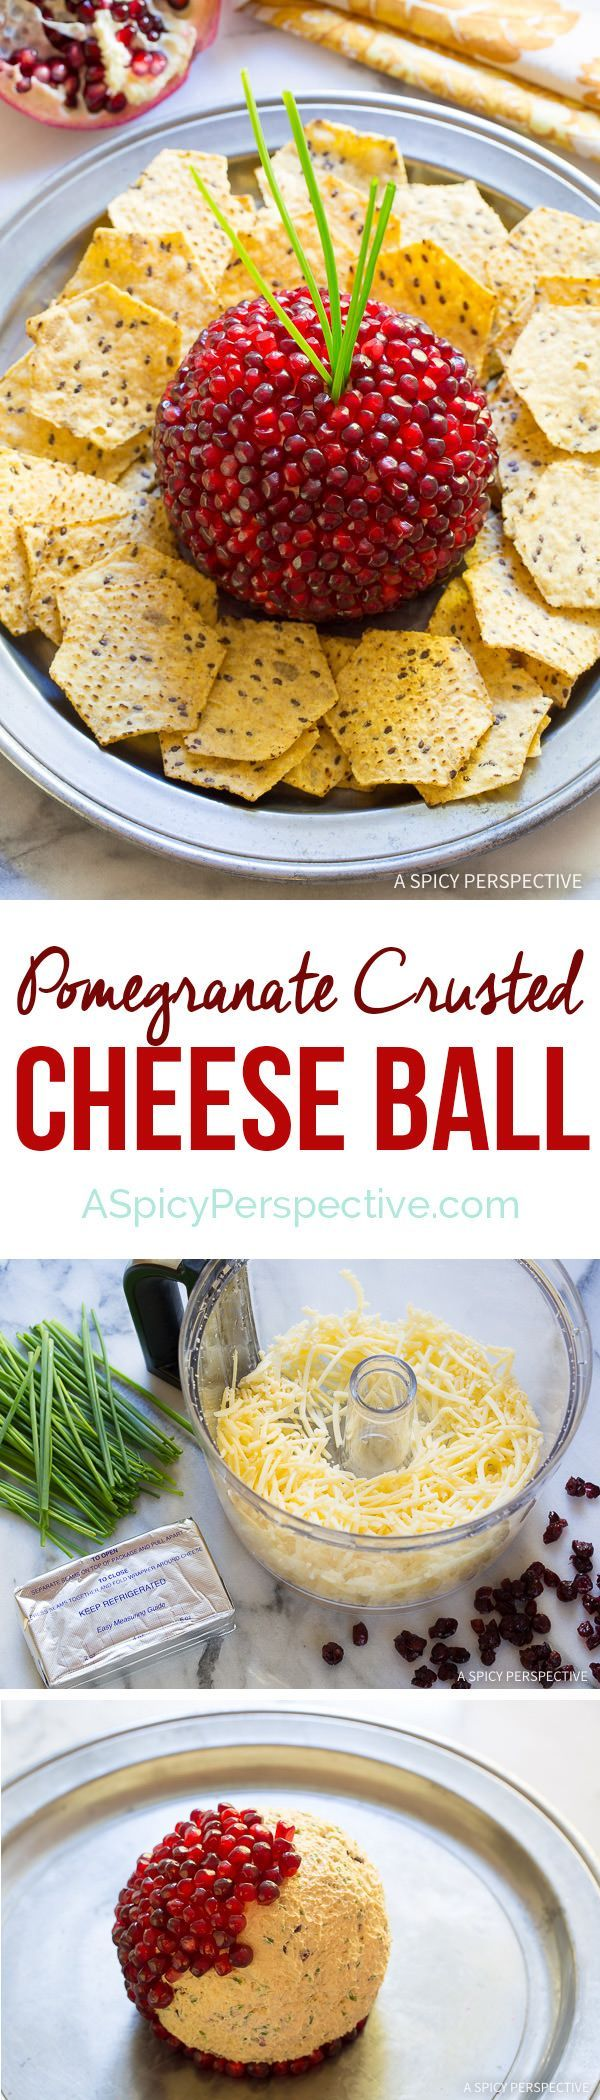 Easy to Make 7-Ingredient Holiday Pomegranate Crusted Cheese Ball Recipe on ASpicyPerspective...